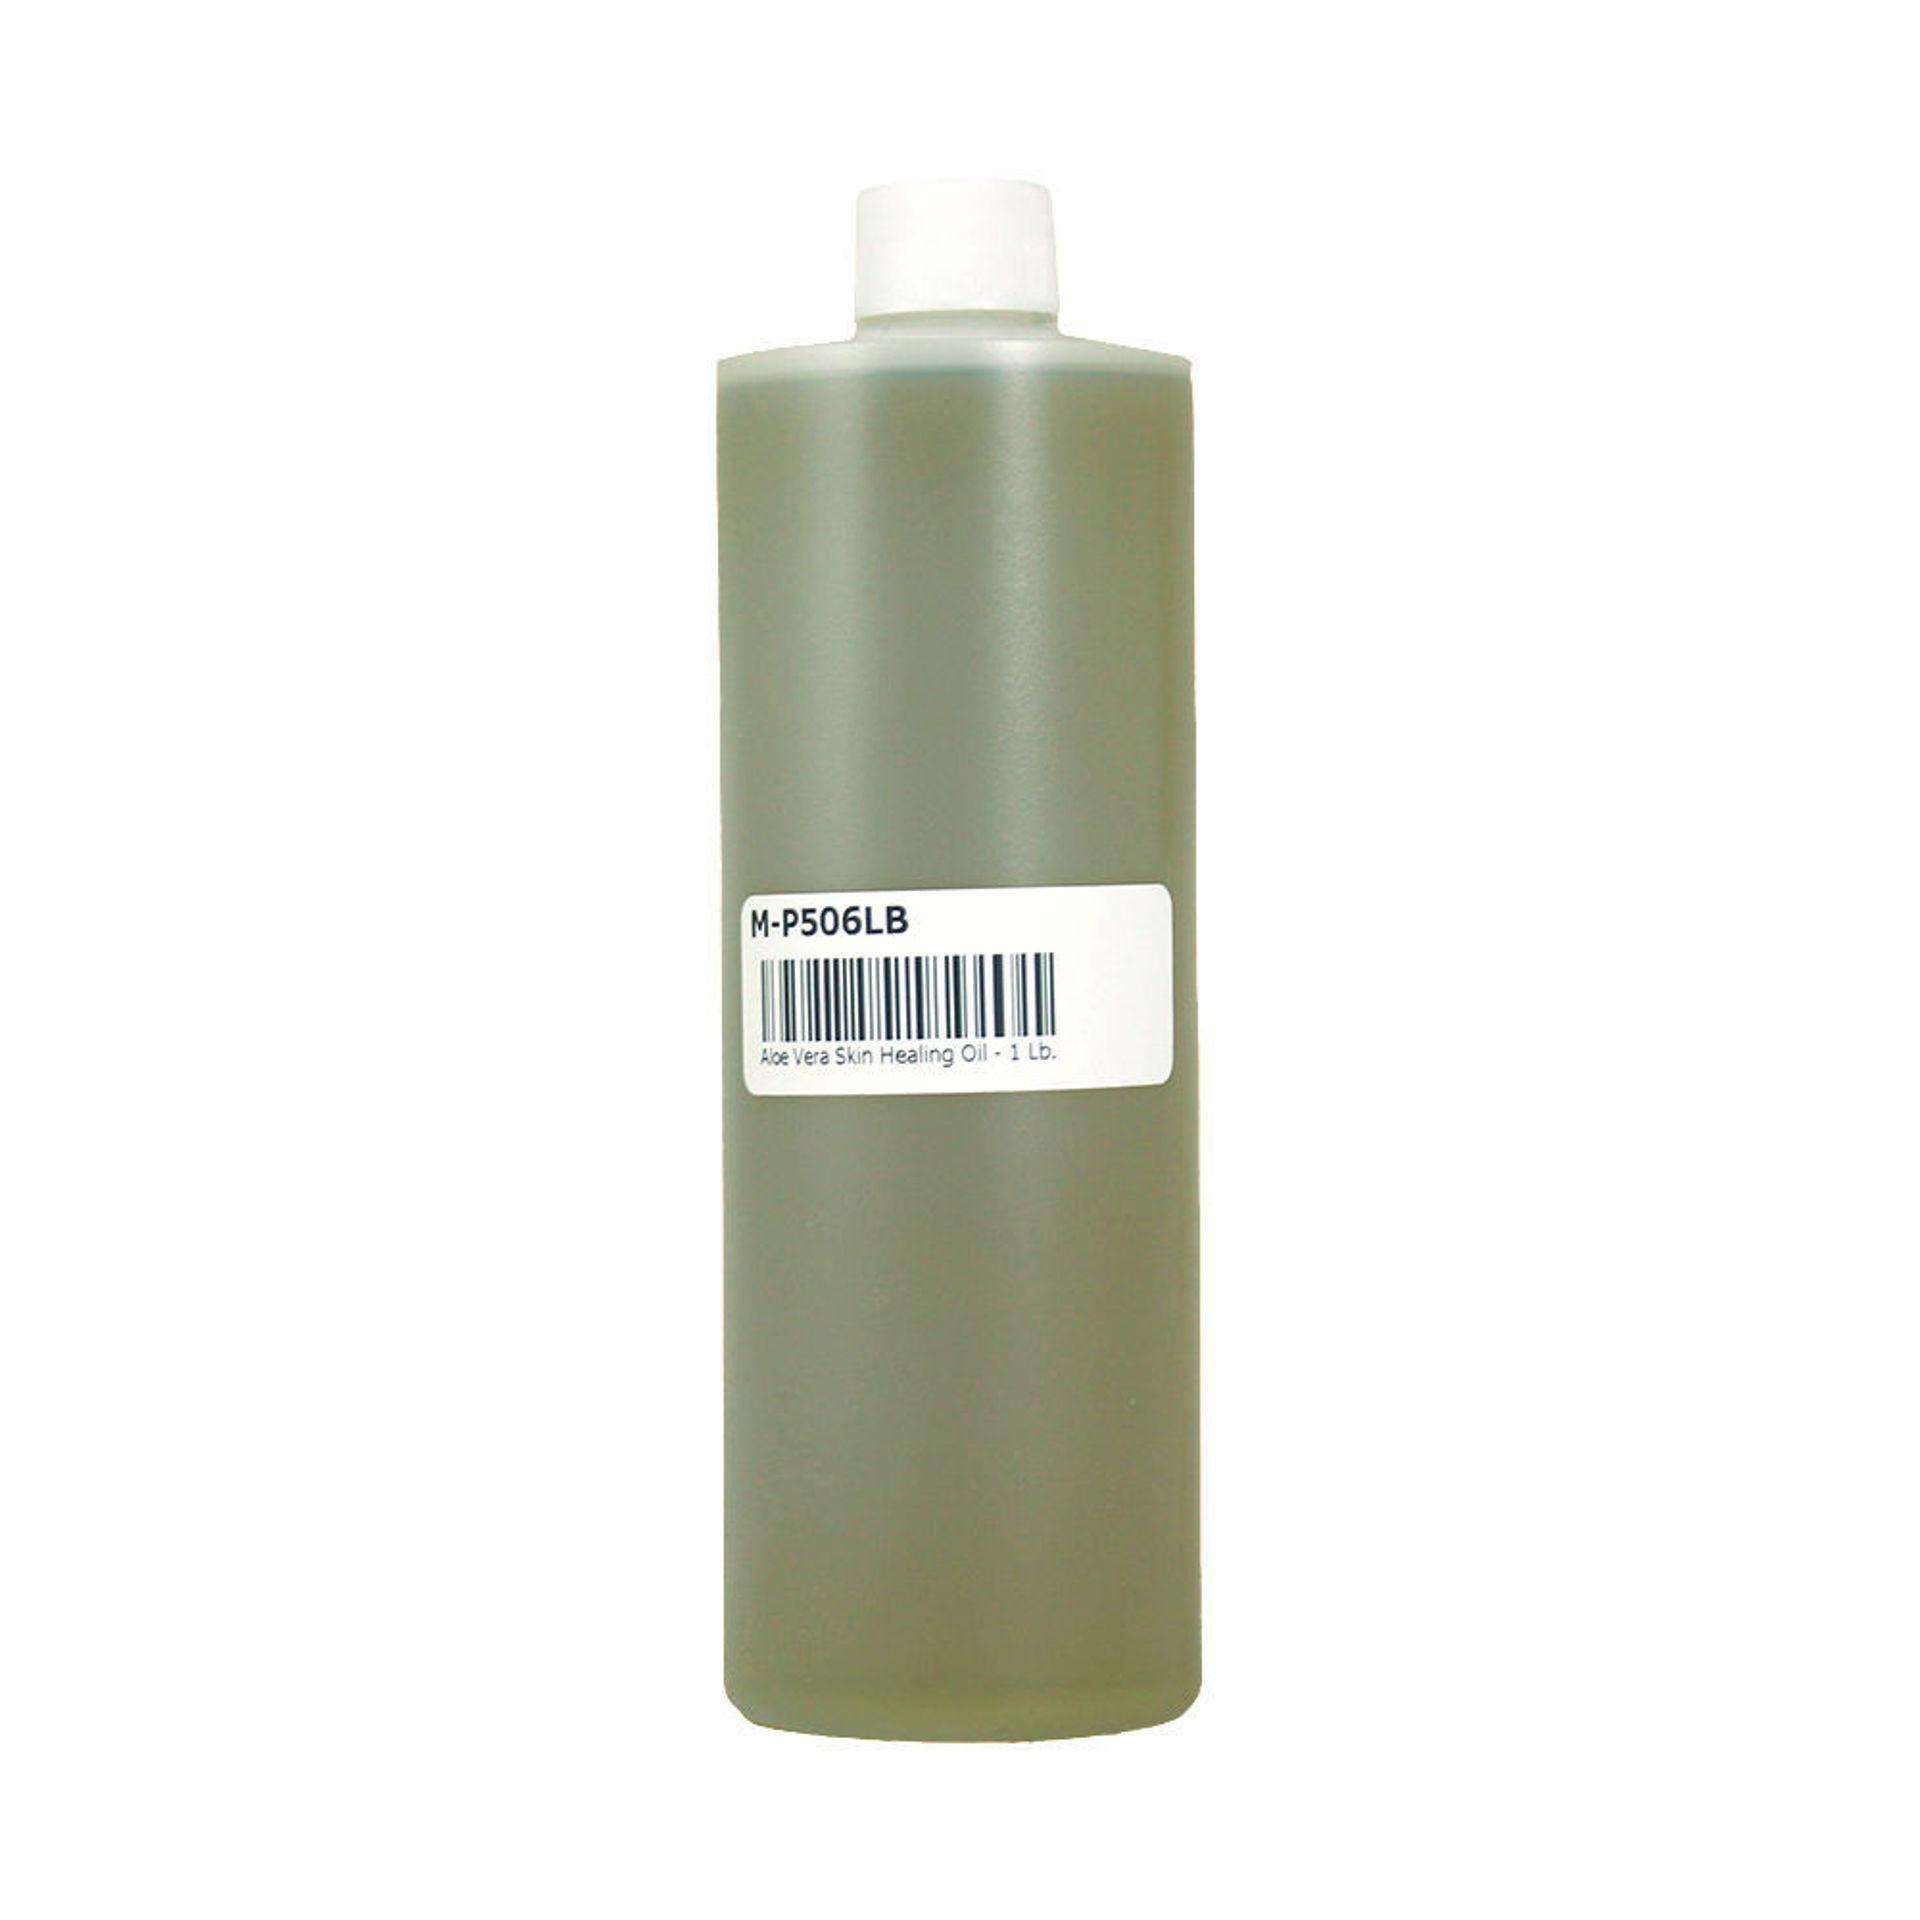 Picture of Aloe Vera Skin Healing Oil - 1 Lb.